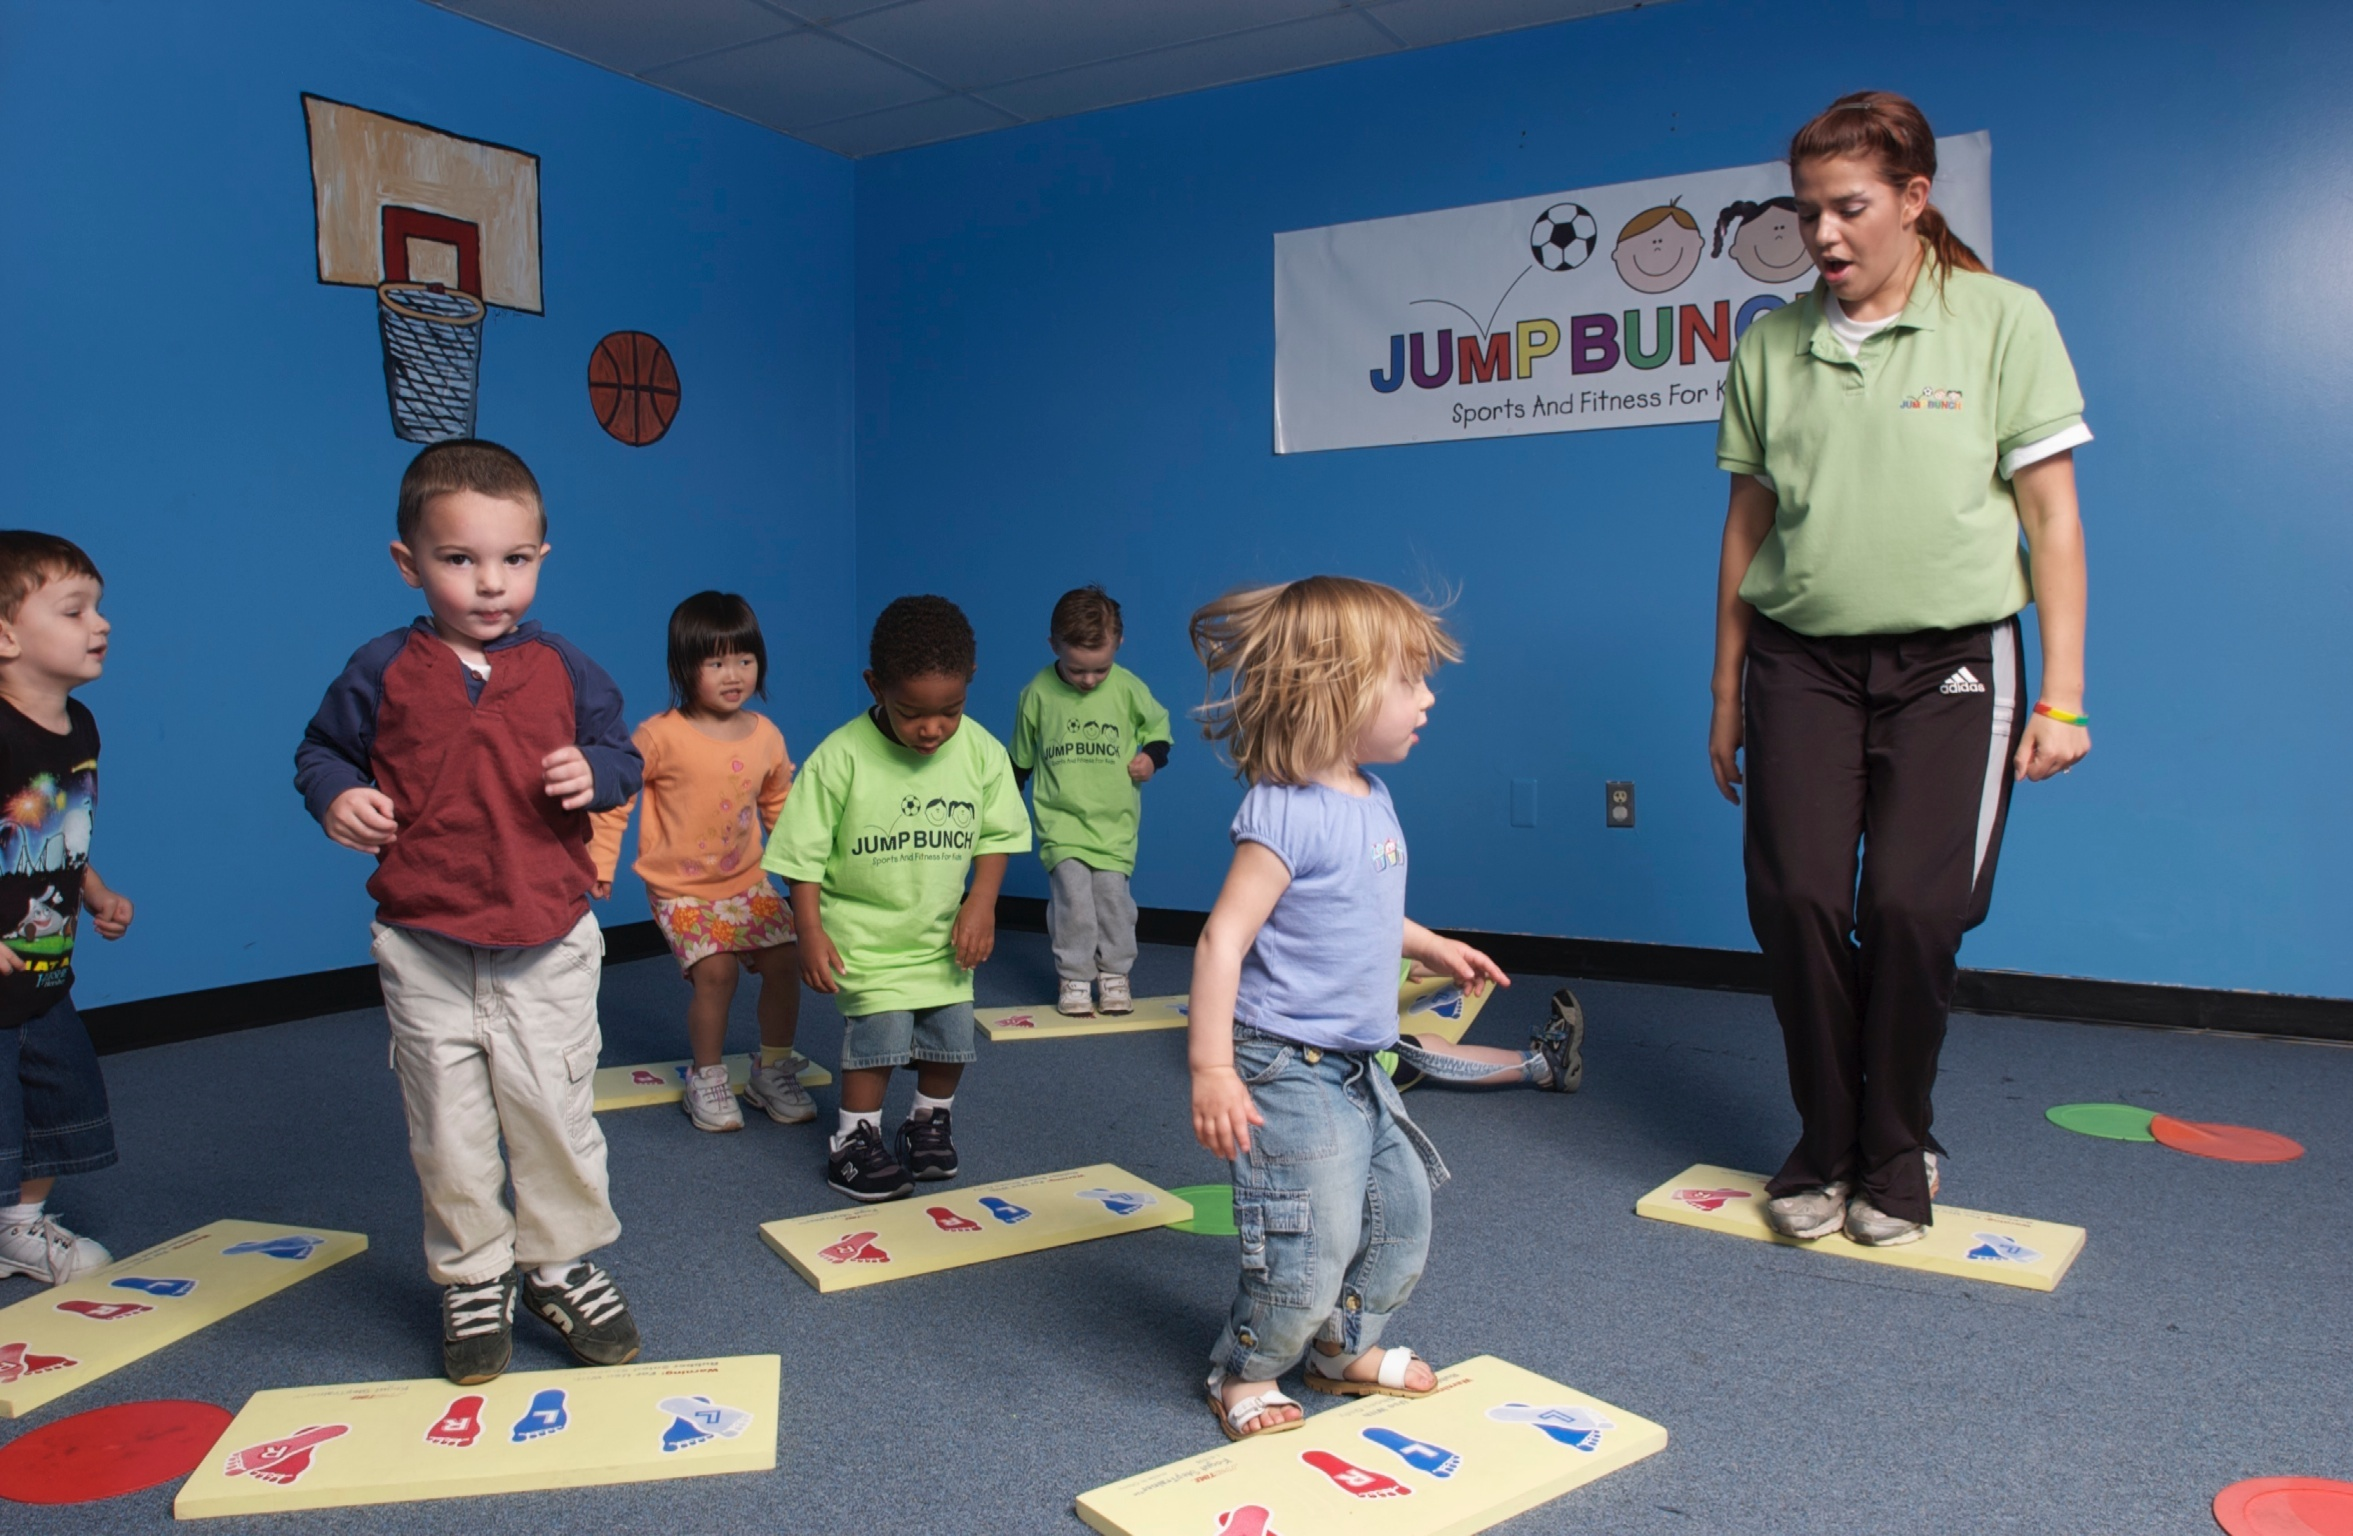 JumpBunch Western Nassau | A Friendly Introduction to Sports and Fitness!